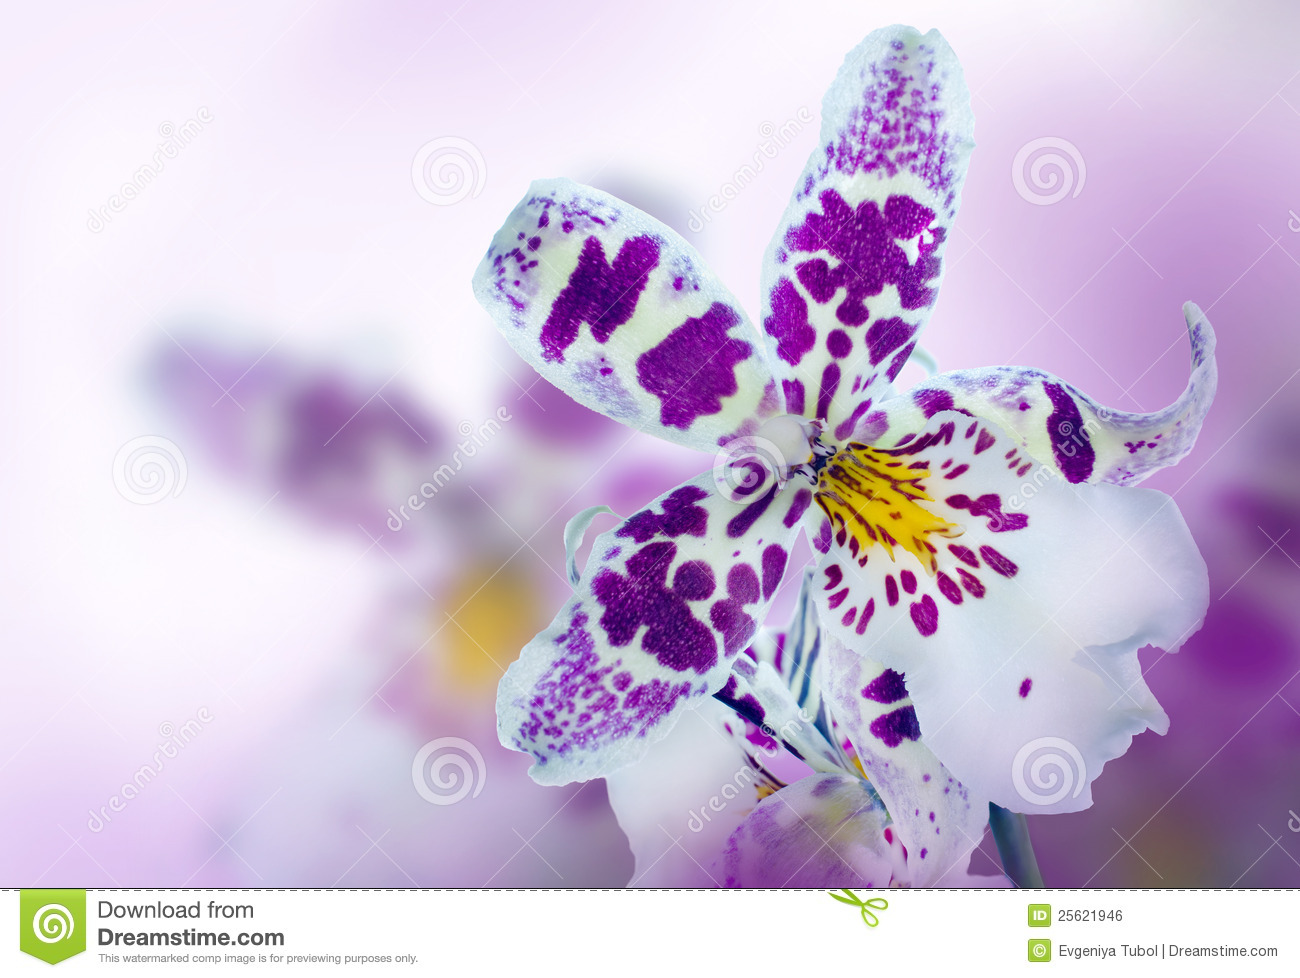 Royalty Free Stock Image Orchid Flowers Image25621946 on orchid background wallpaper